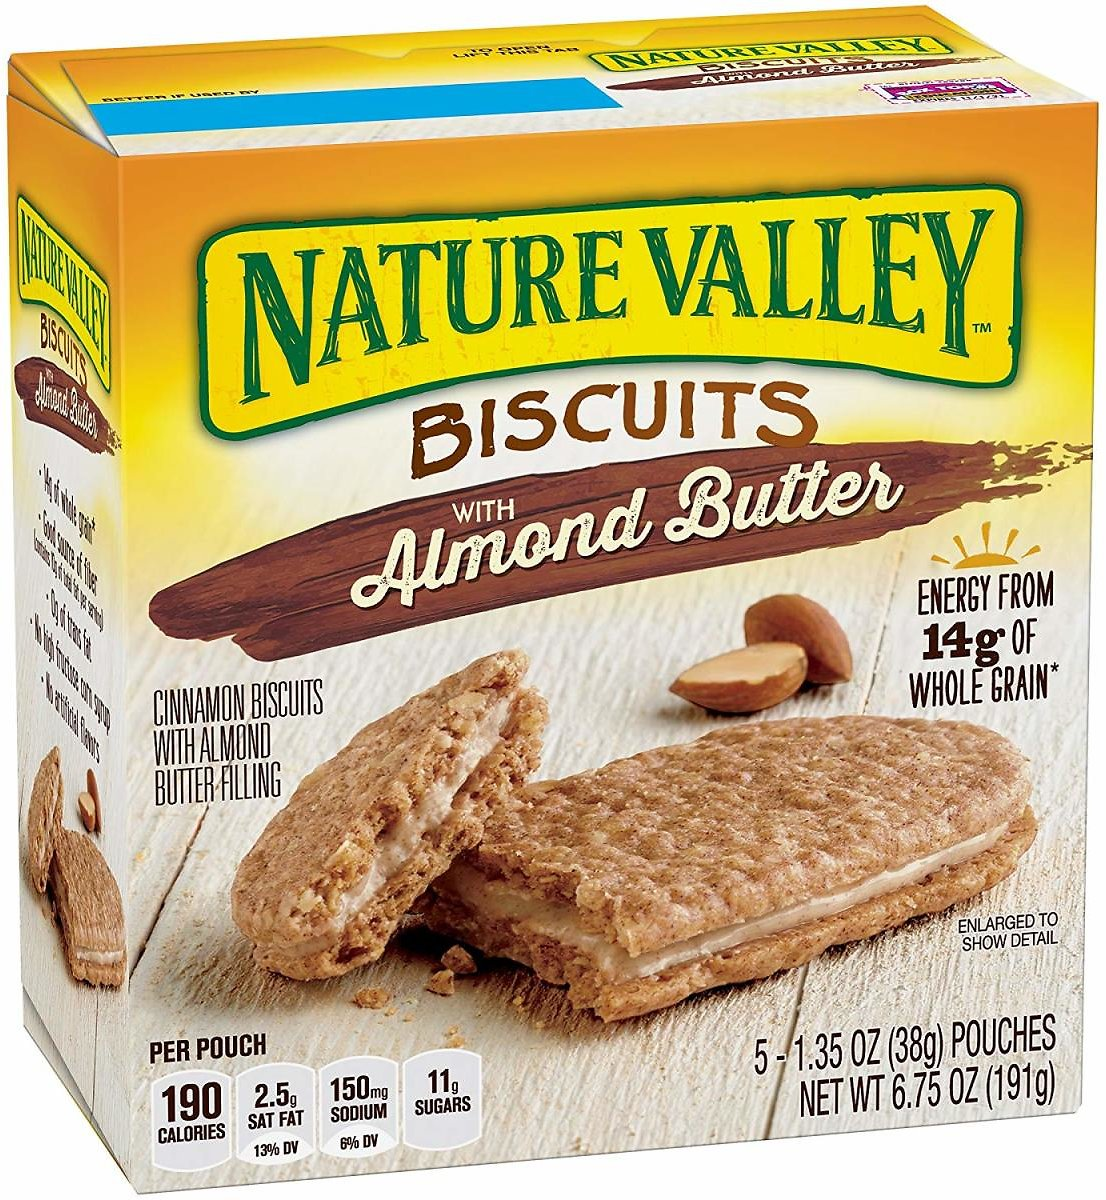 Nature Valley Almond Butter Biscuits